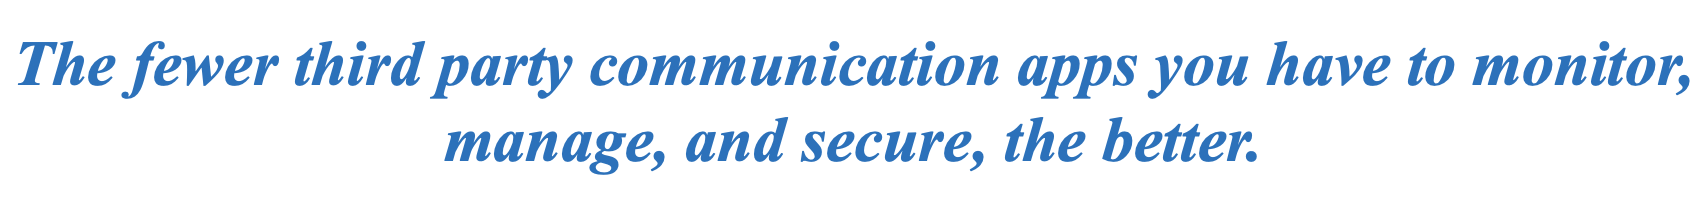 The fewer third party communication apps you have to monitor, manage, and secure, the better.